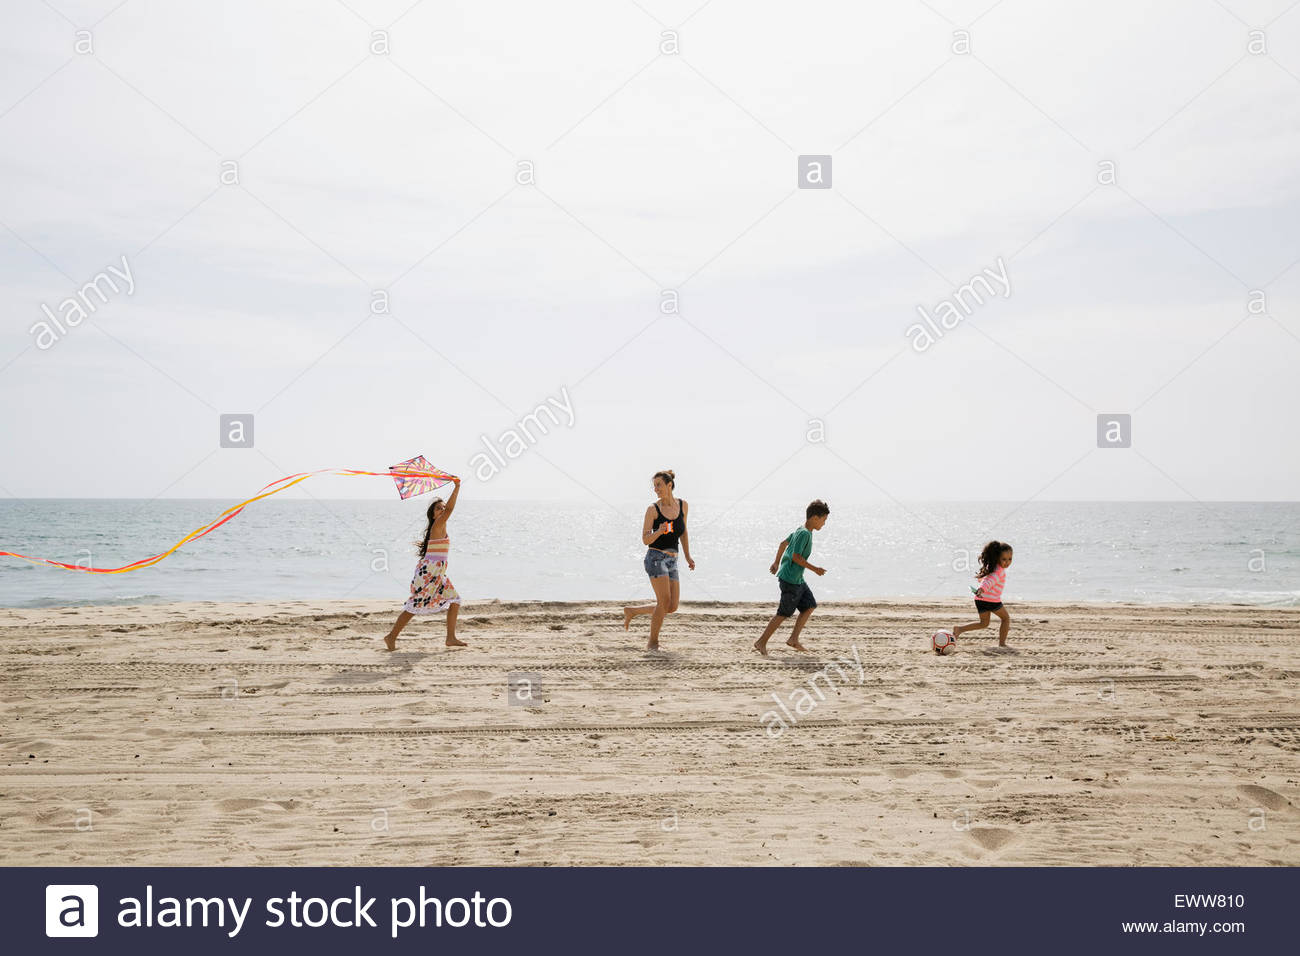 Family flying kite on sunny beach - Stock Image